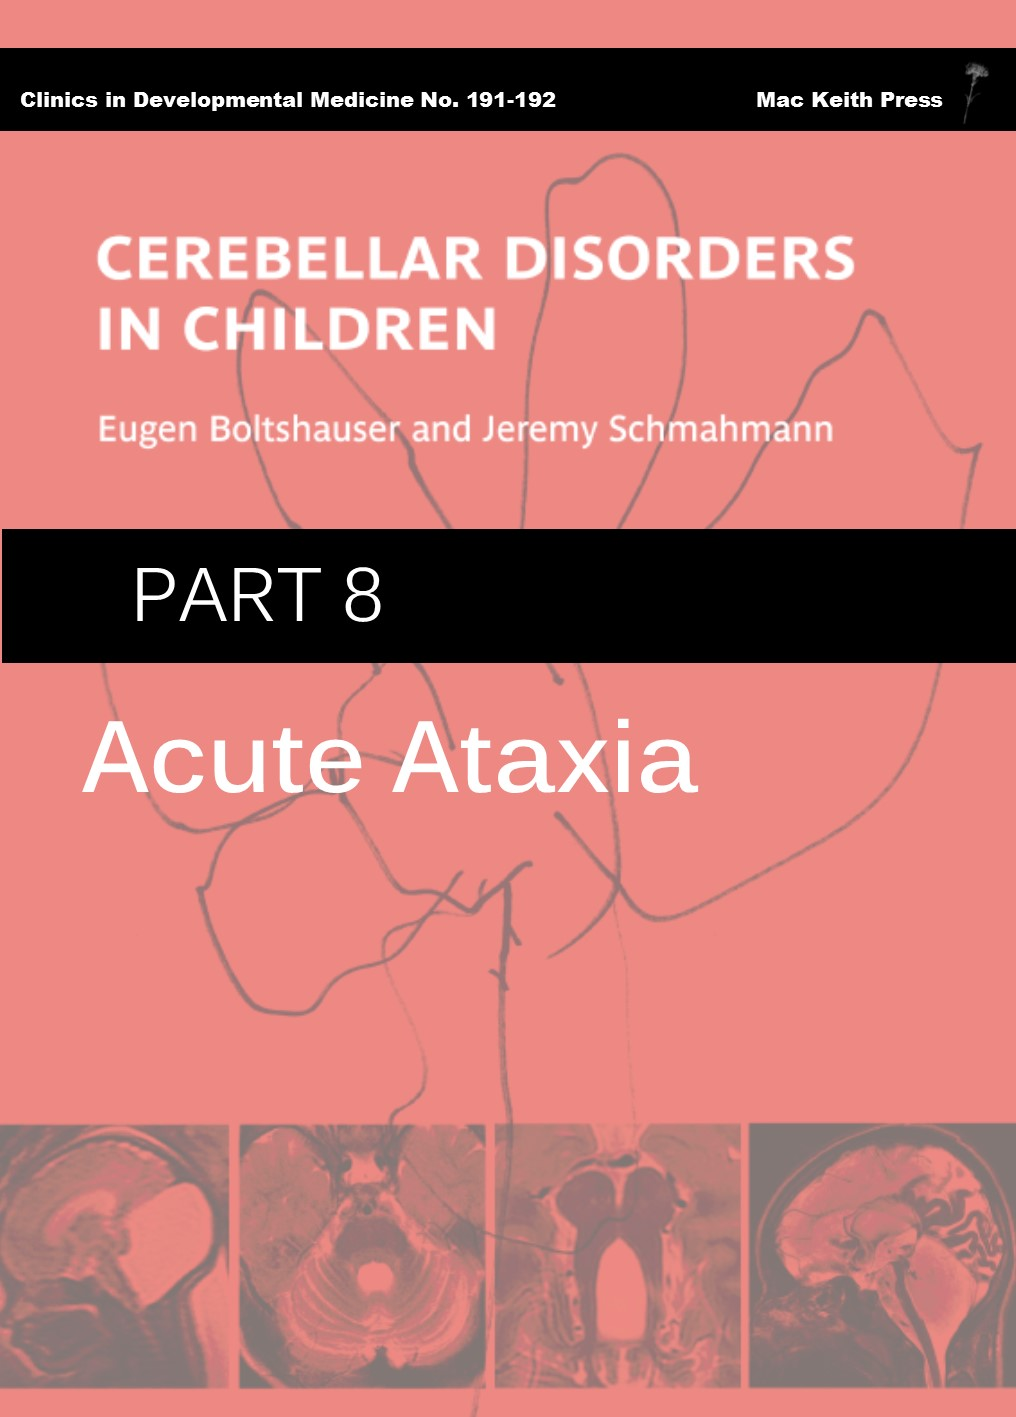 Cerebellar Disorders in Children - Part 8: Acute Ataxia COVER